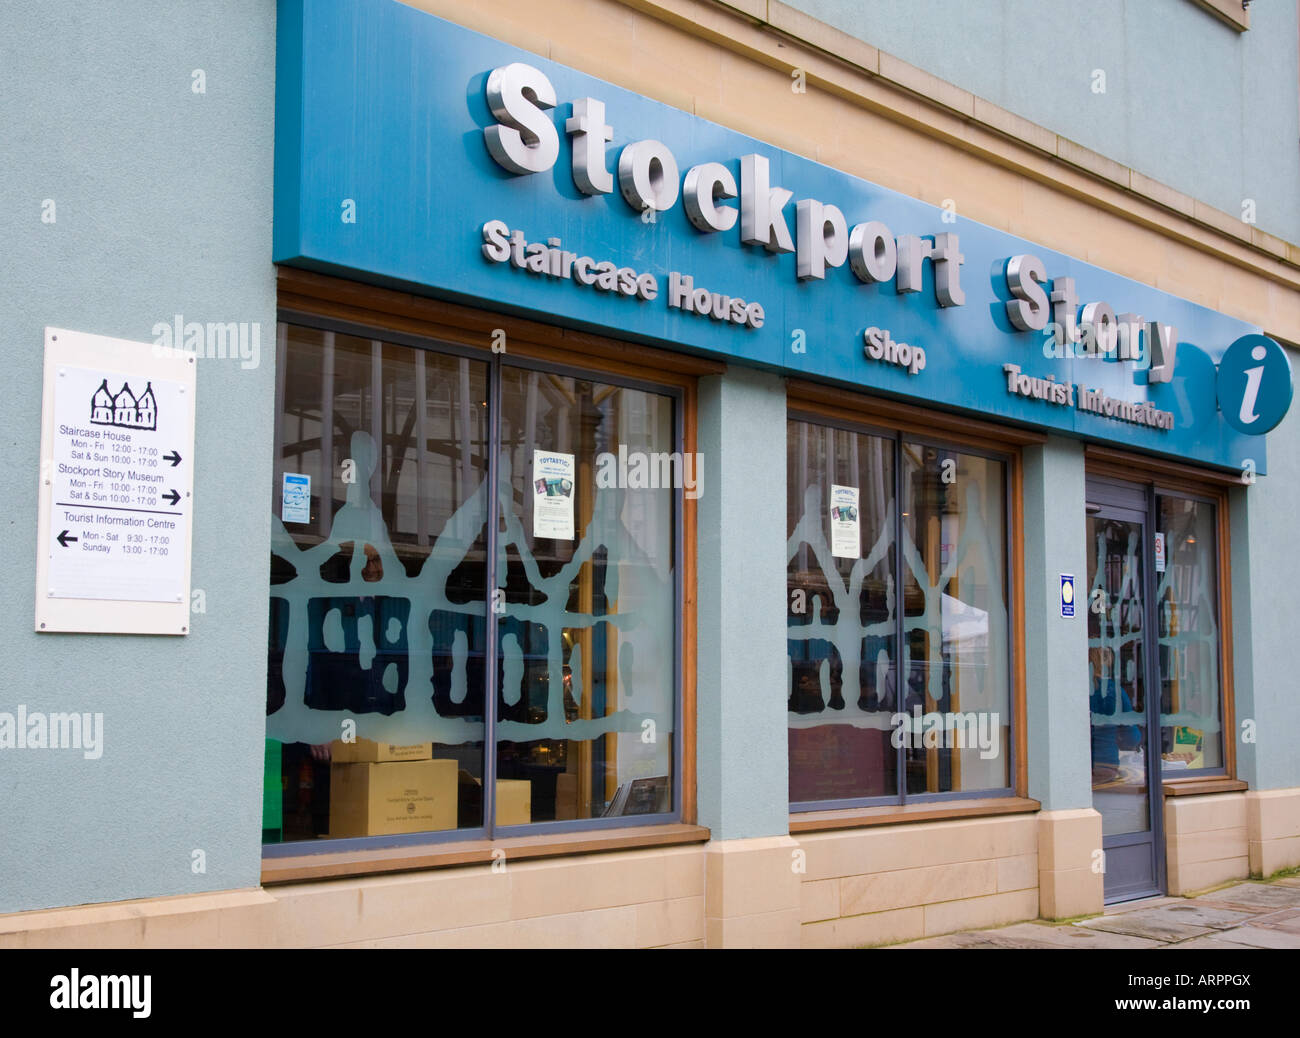 Stockport Story Museum and tourist information. Stockport Market, Stockport, Greater Manchester, United Kingdom. - Stock Image